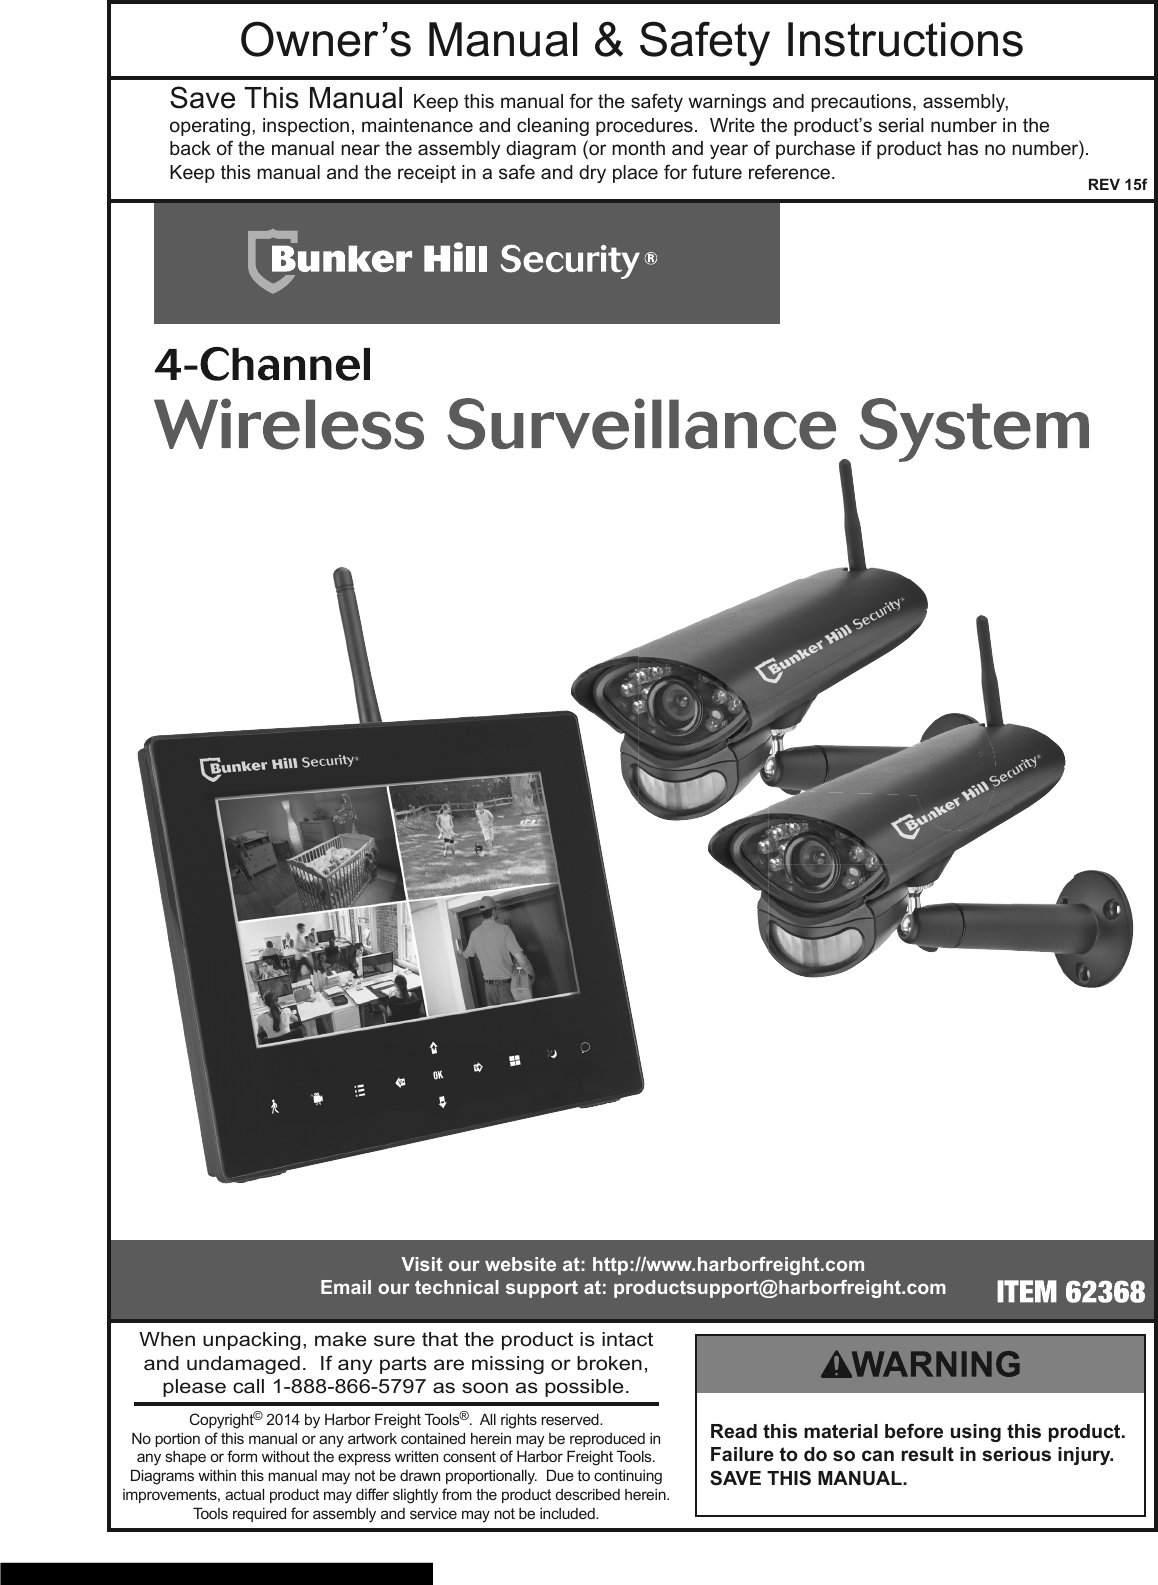 Bunker Hill Wireless Security System 62368